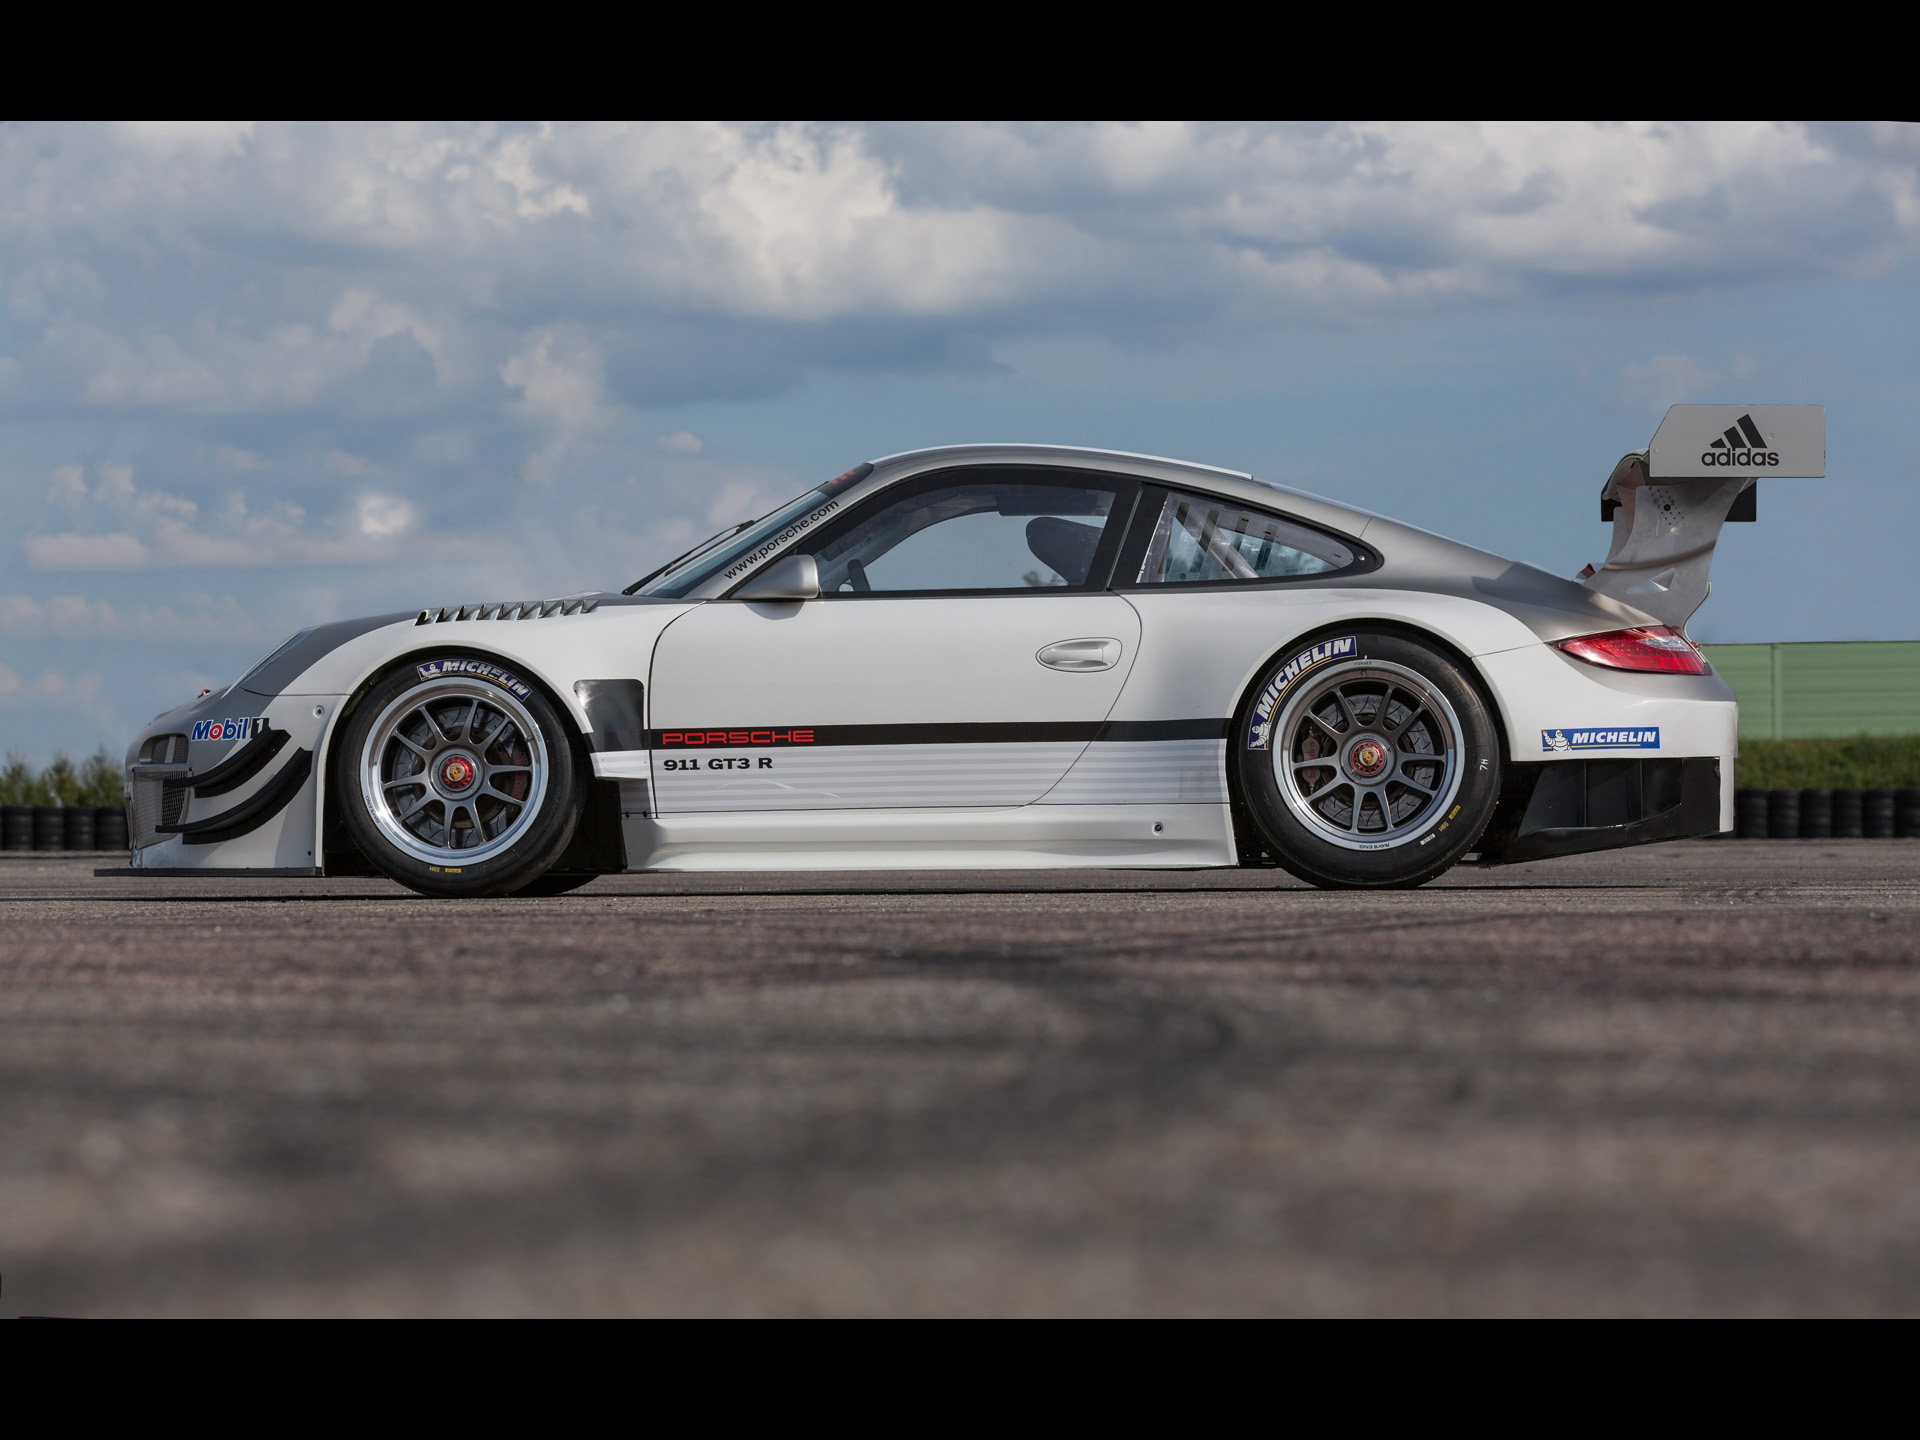 2013 Porsche 911 GT3 R   Static 4   1920x1440   Wallpaper 1920x1440